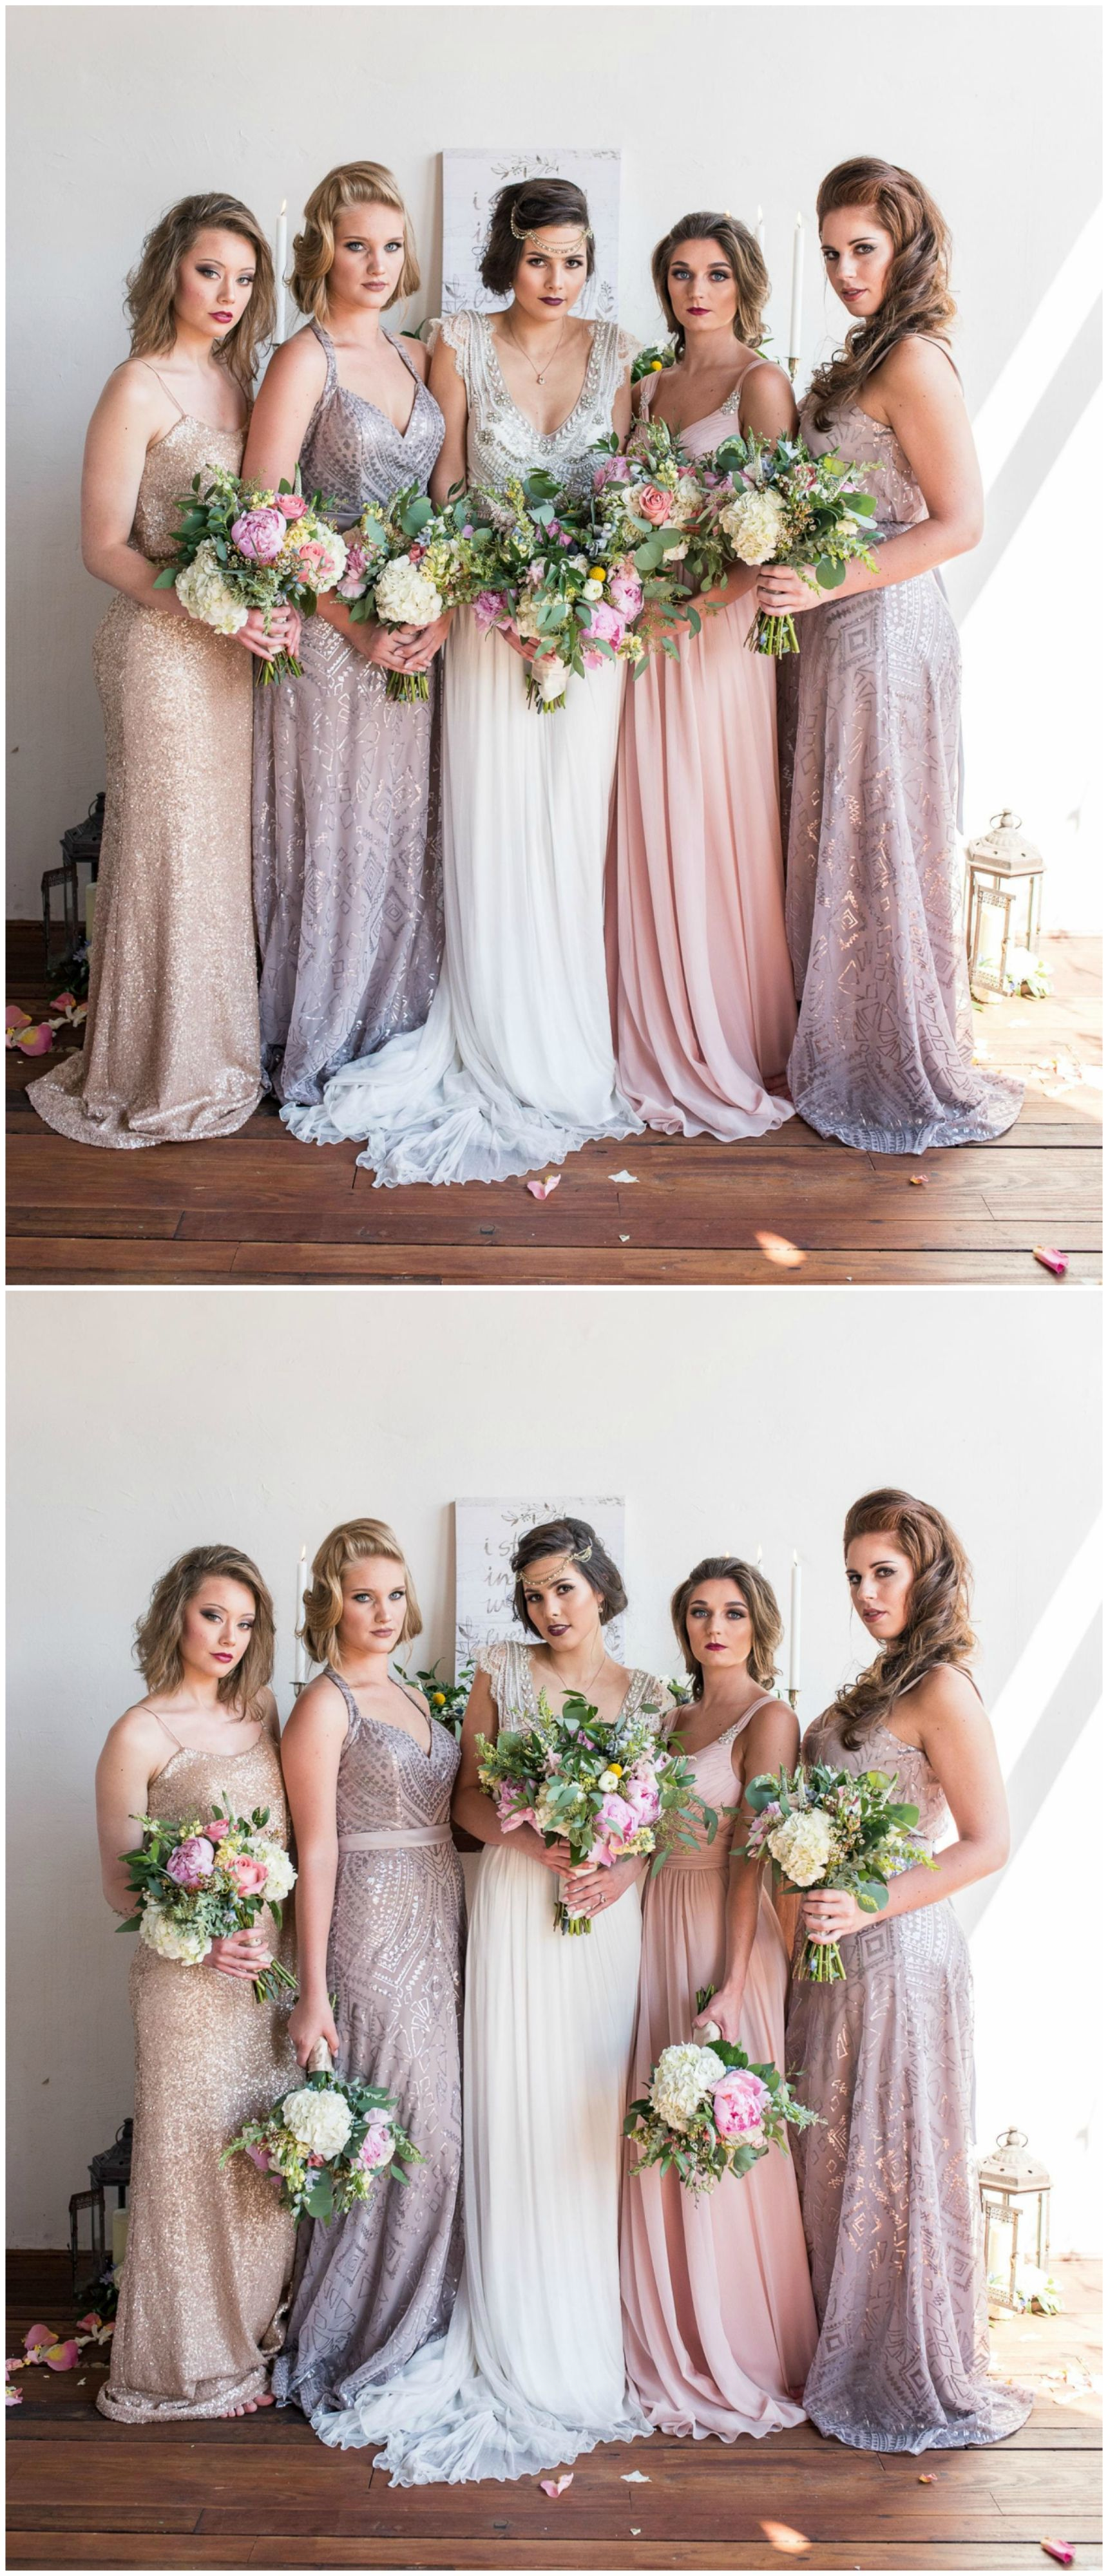 The smarter way to wed gatsby weddings and wedding beaded bridesmaid gowns sparkly dresses 1920s inspired gatsby glam wedding fashion ombrellifo Image collections